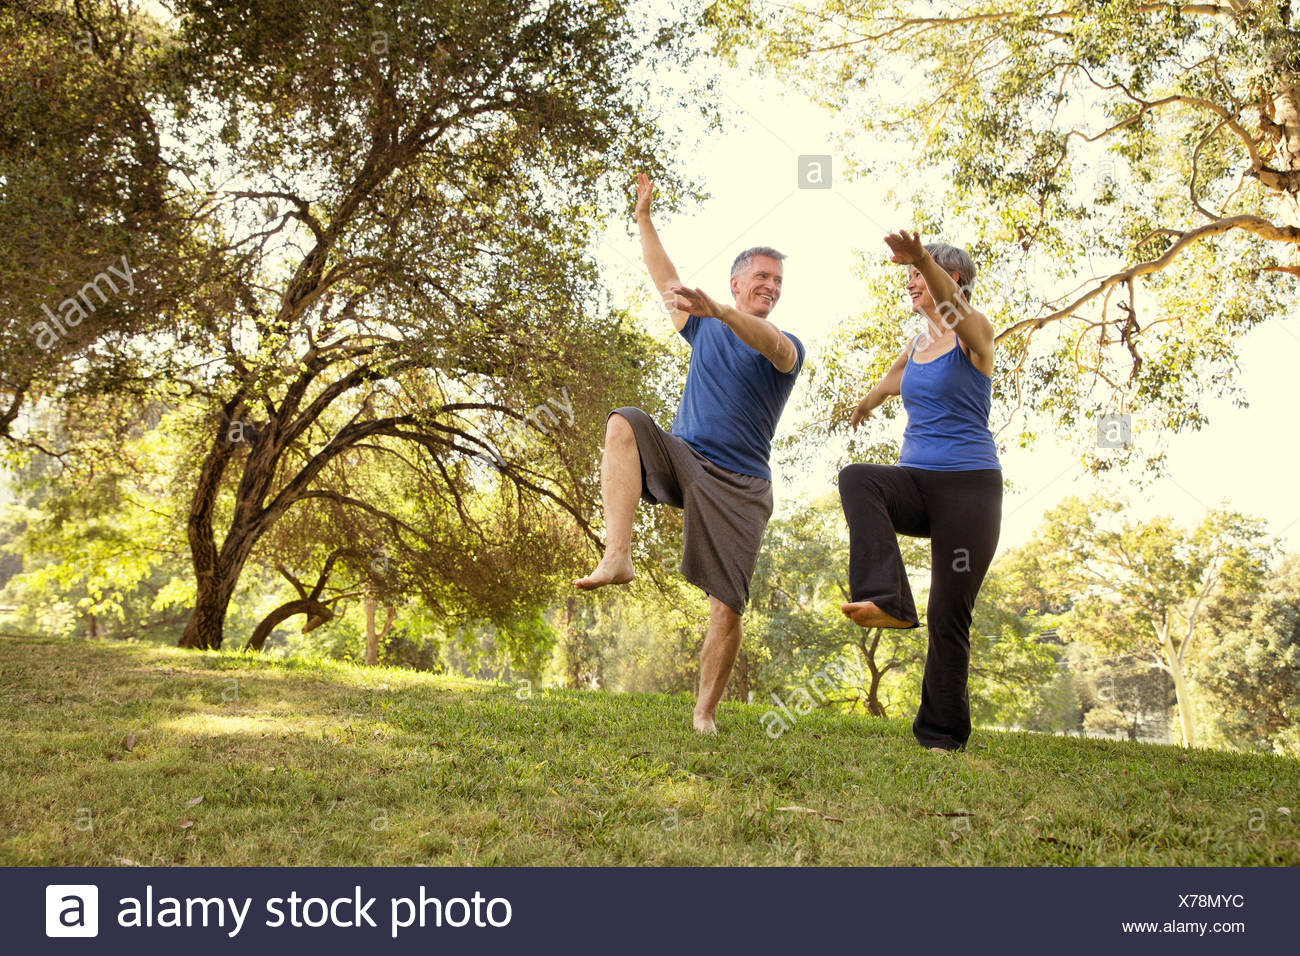 Positions Stock Photos & Positions Stock Images - Alamy